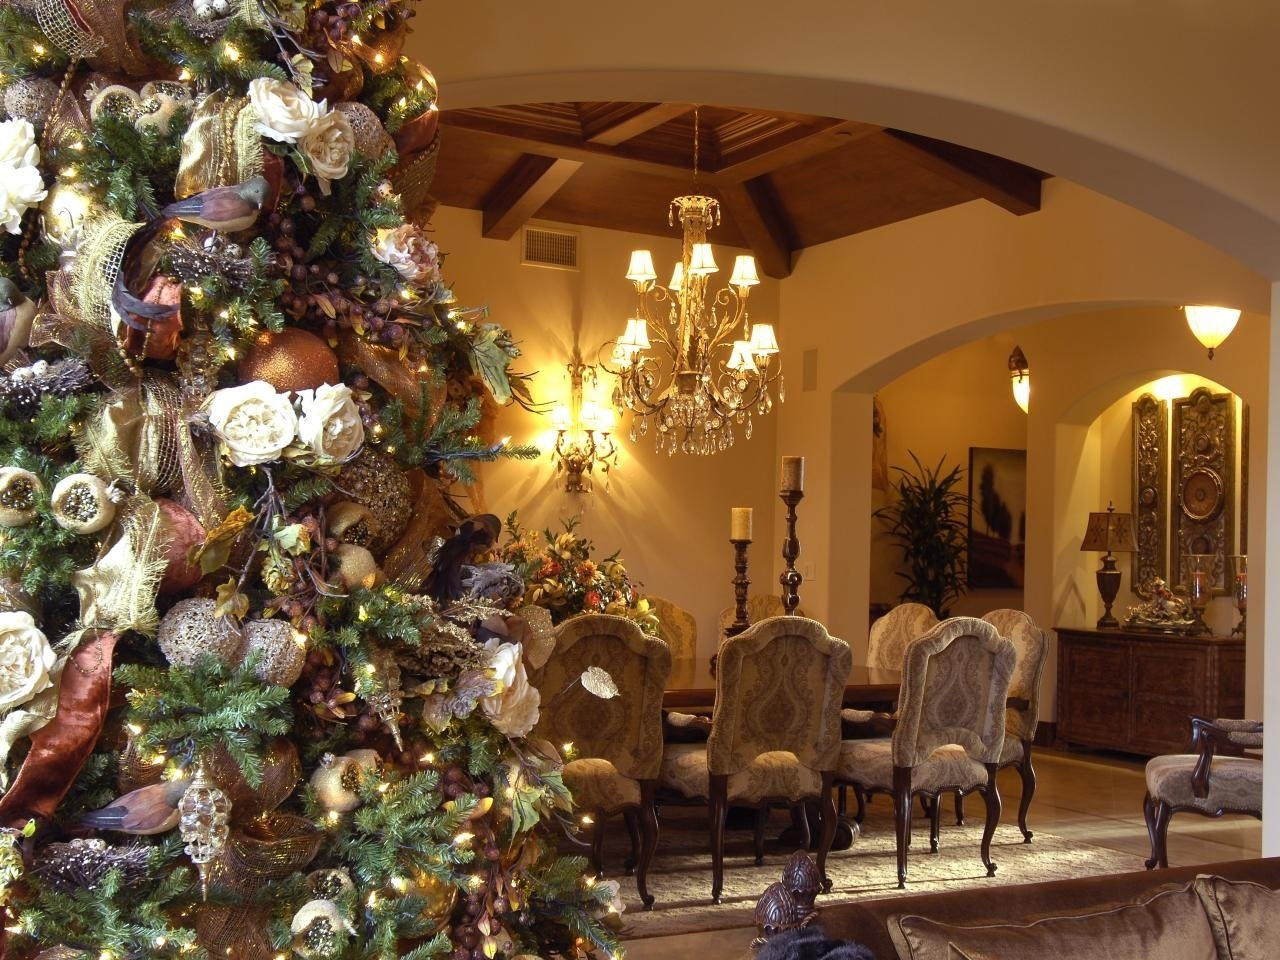 10 Attractive Hgtv Christmas Tree Decorating Ideas christmas tree decorating ideas interior design styles color dma 2020